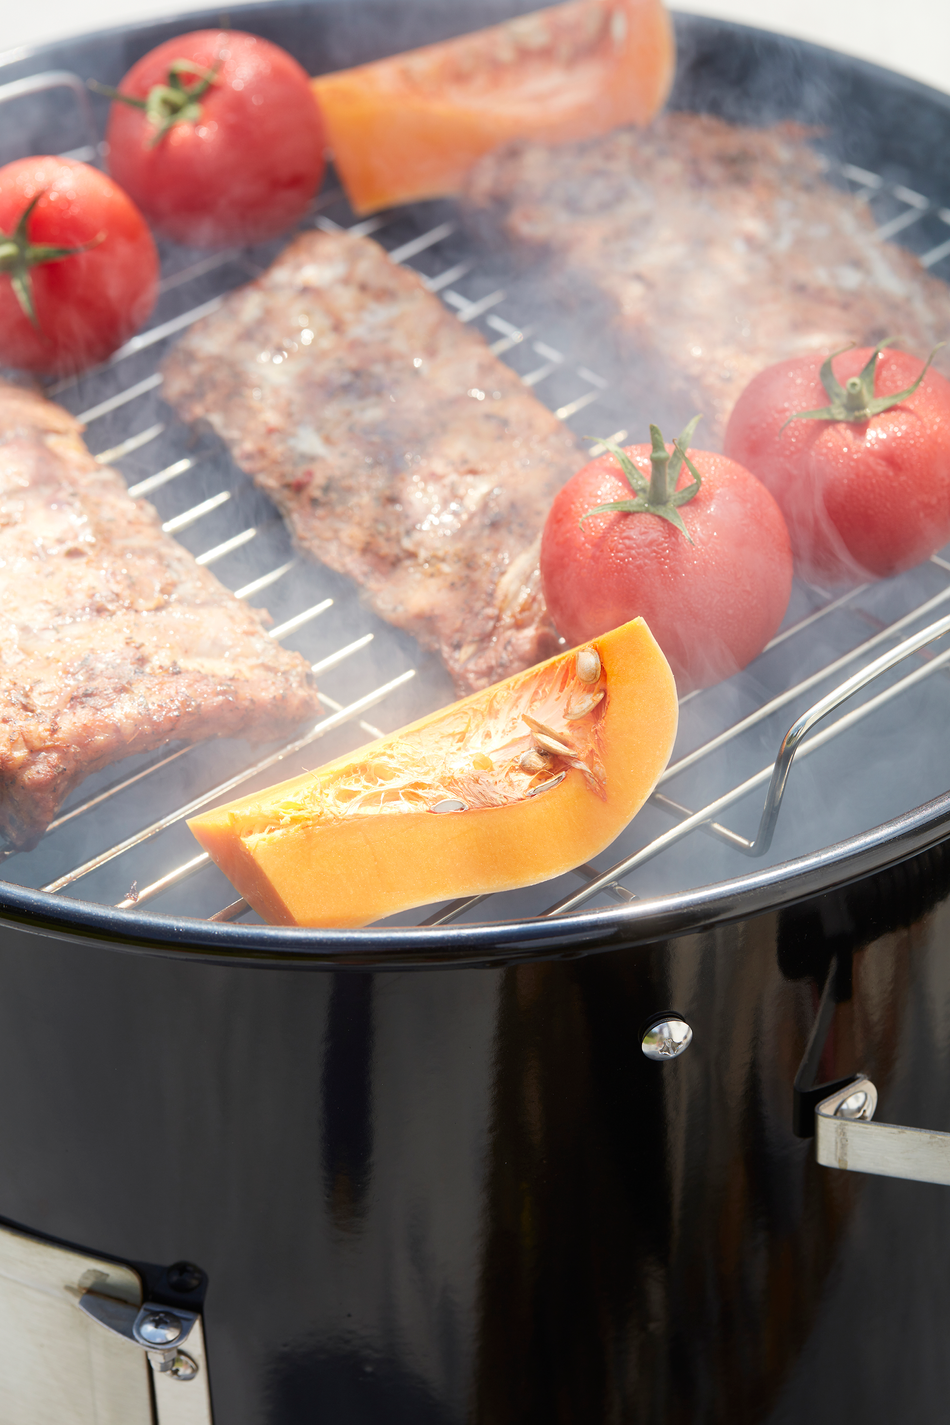 What are the advantages of an Oskar S smoker?